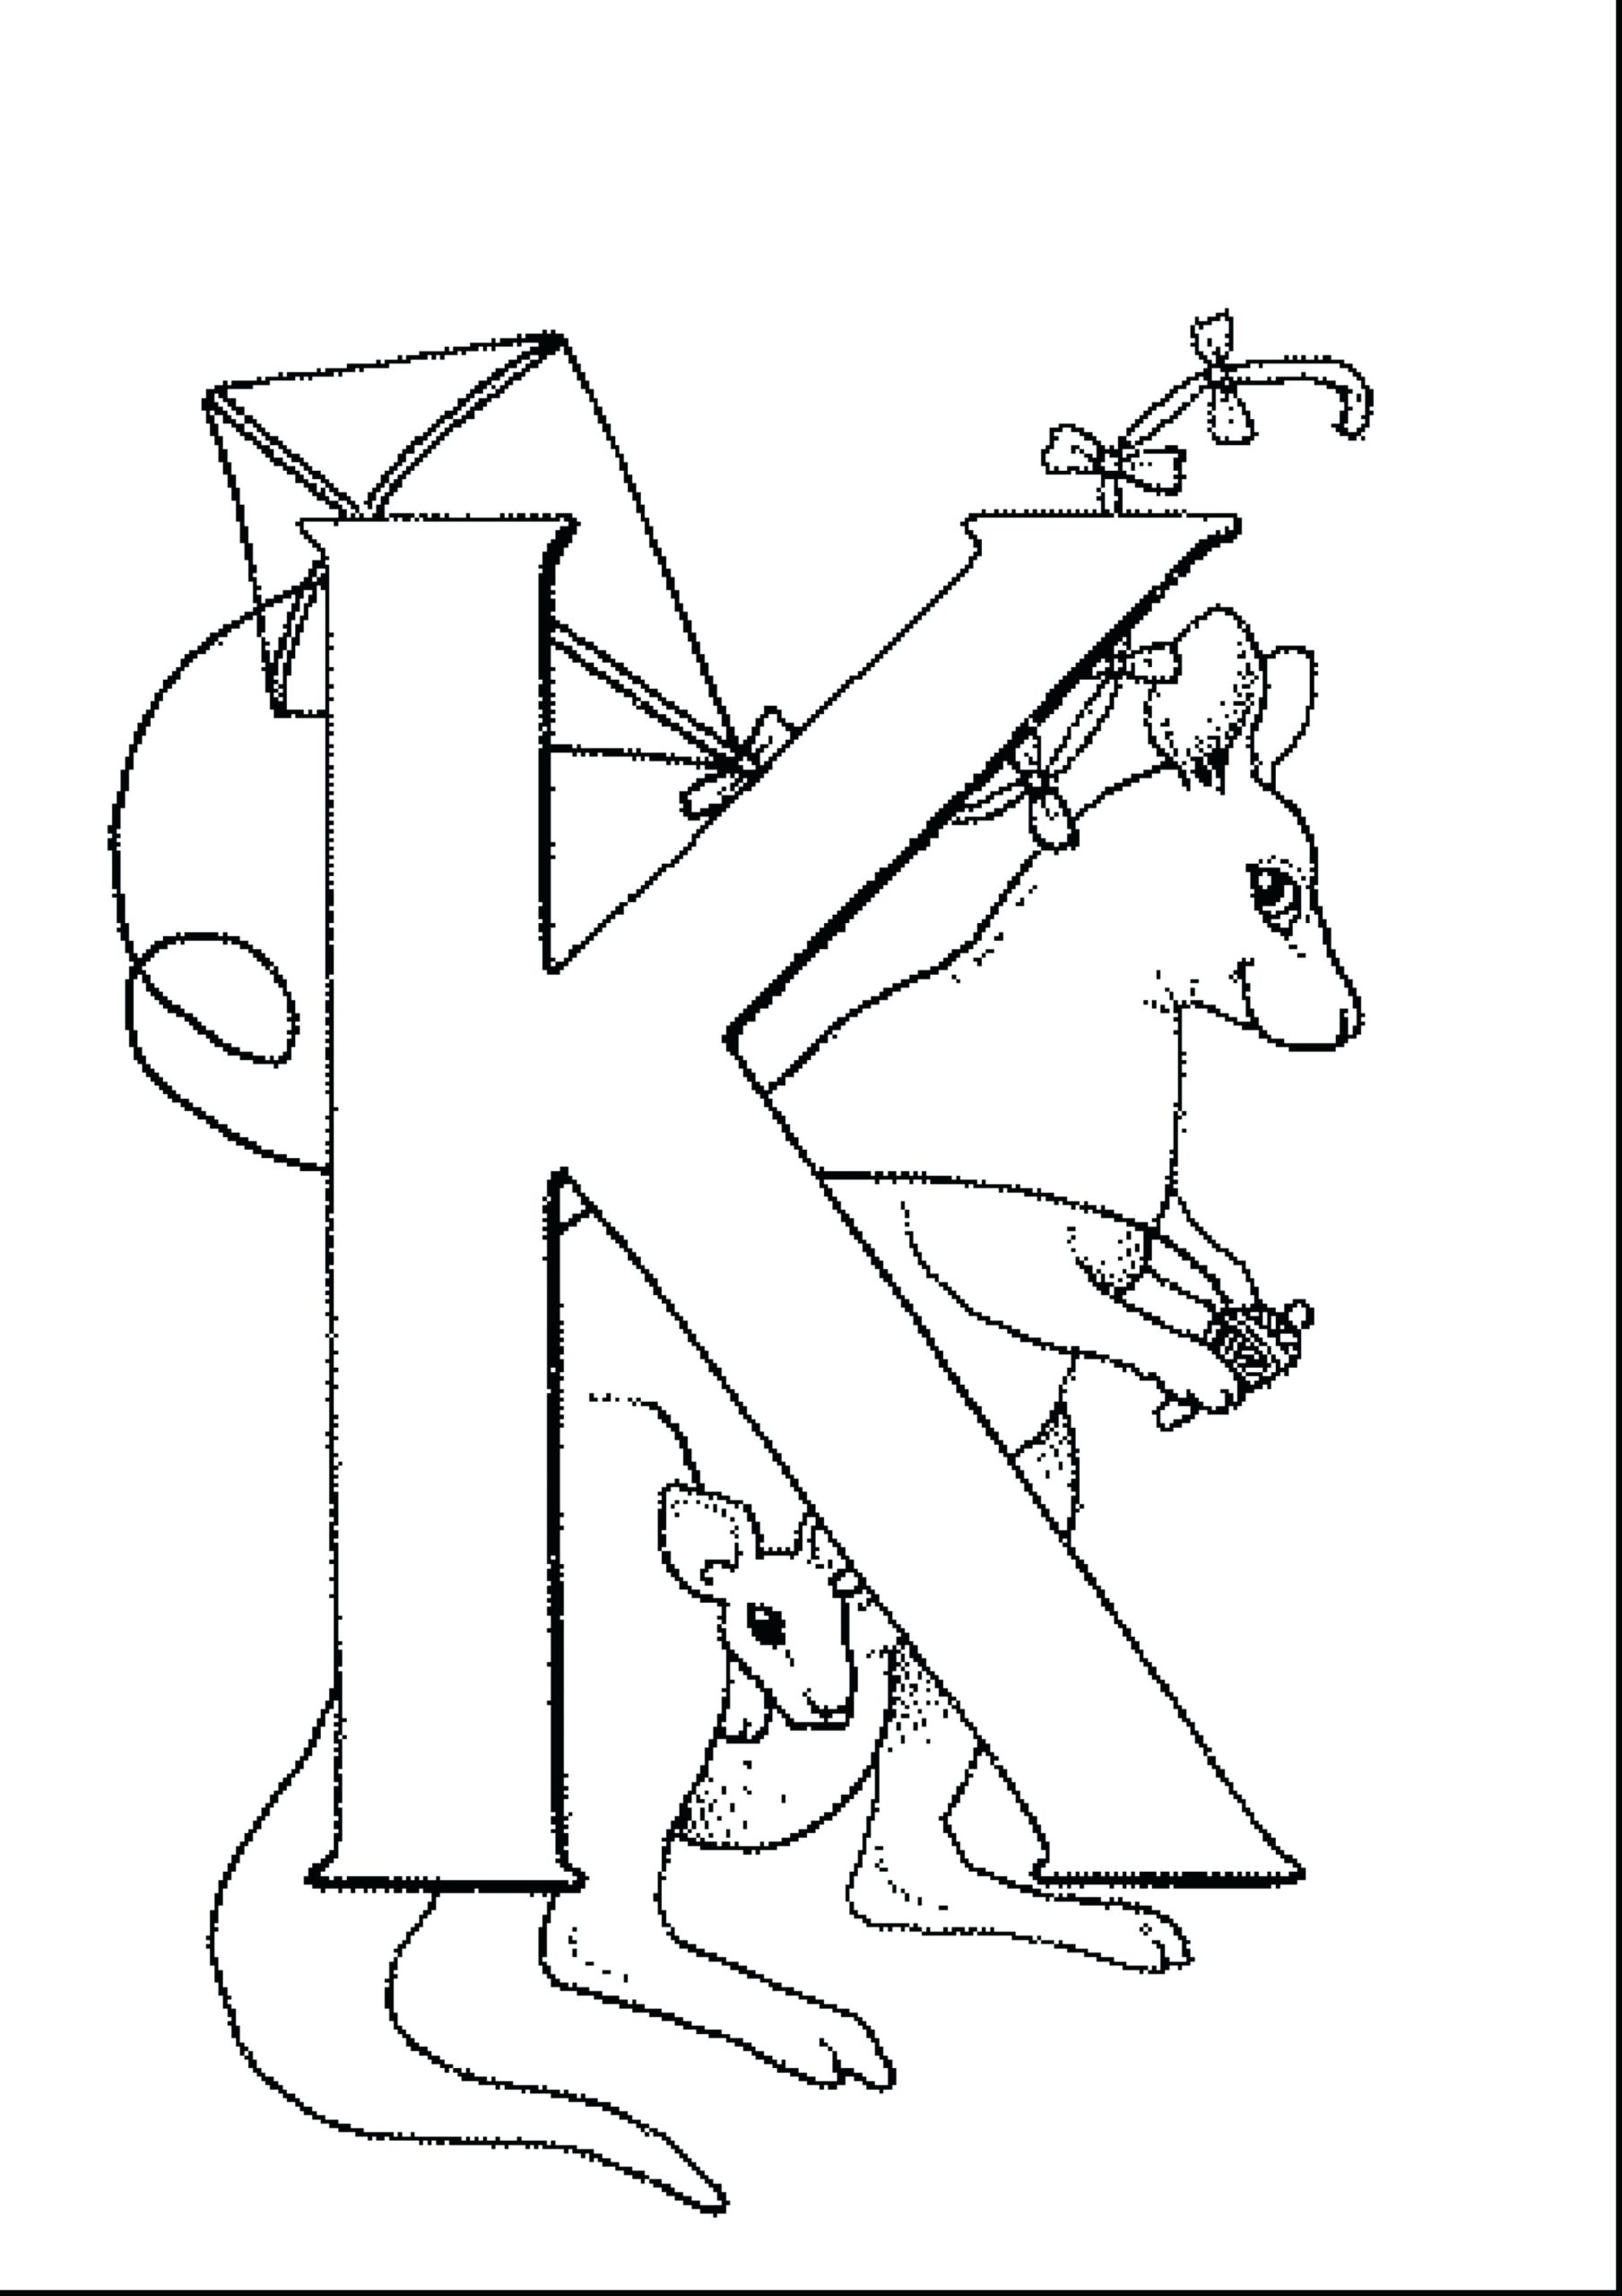 Coloring Page For Kids ~ Letterg Sheets Mayhemcolor Animal with Bubble Tracing Letters Printable